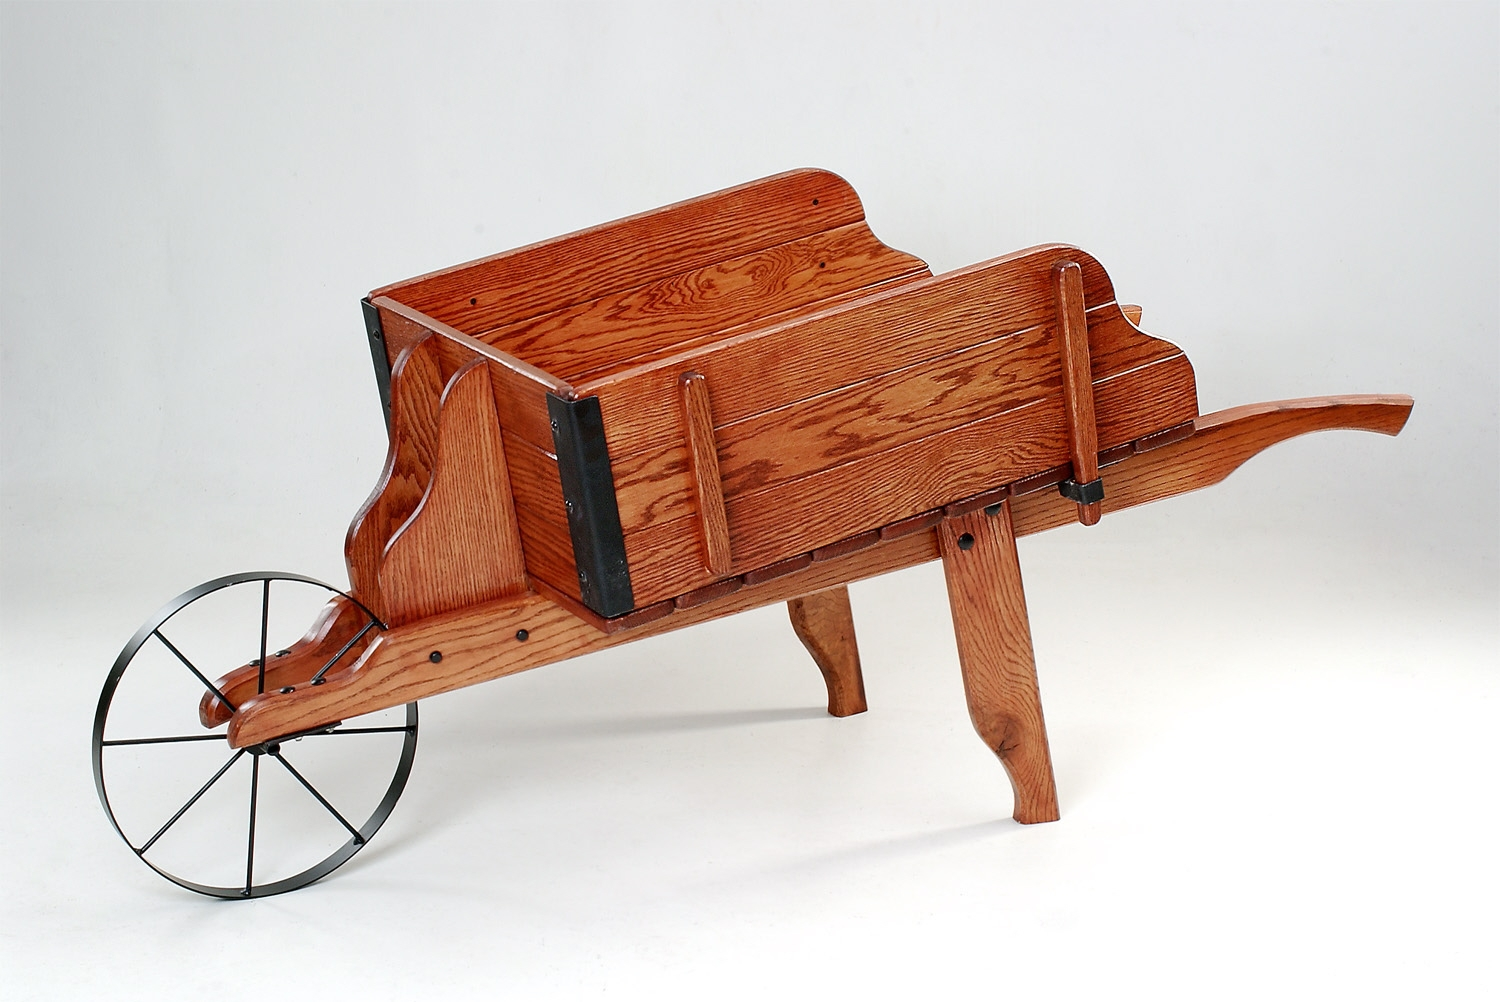 Antique Wheelbarrow Kit with removable sides